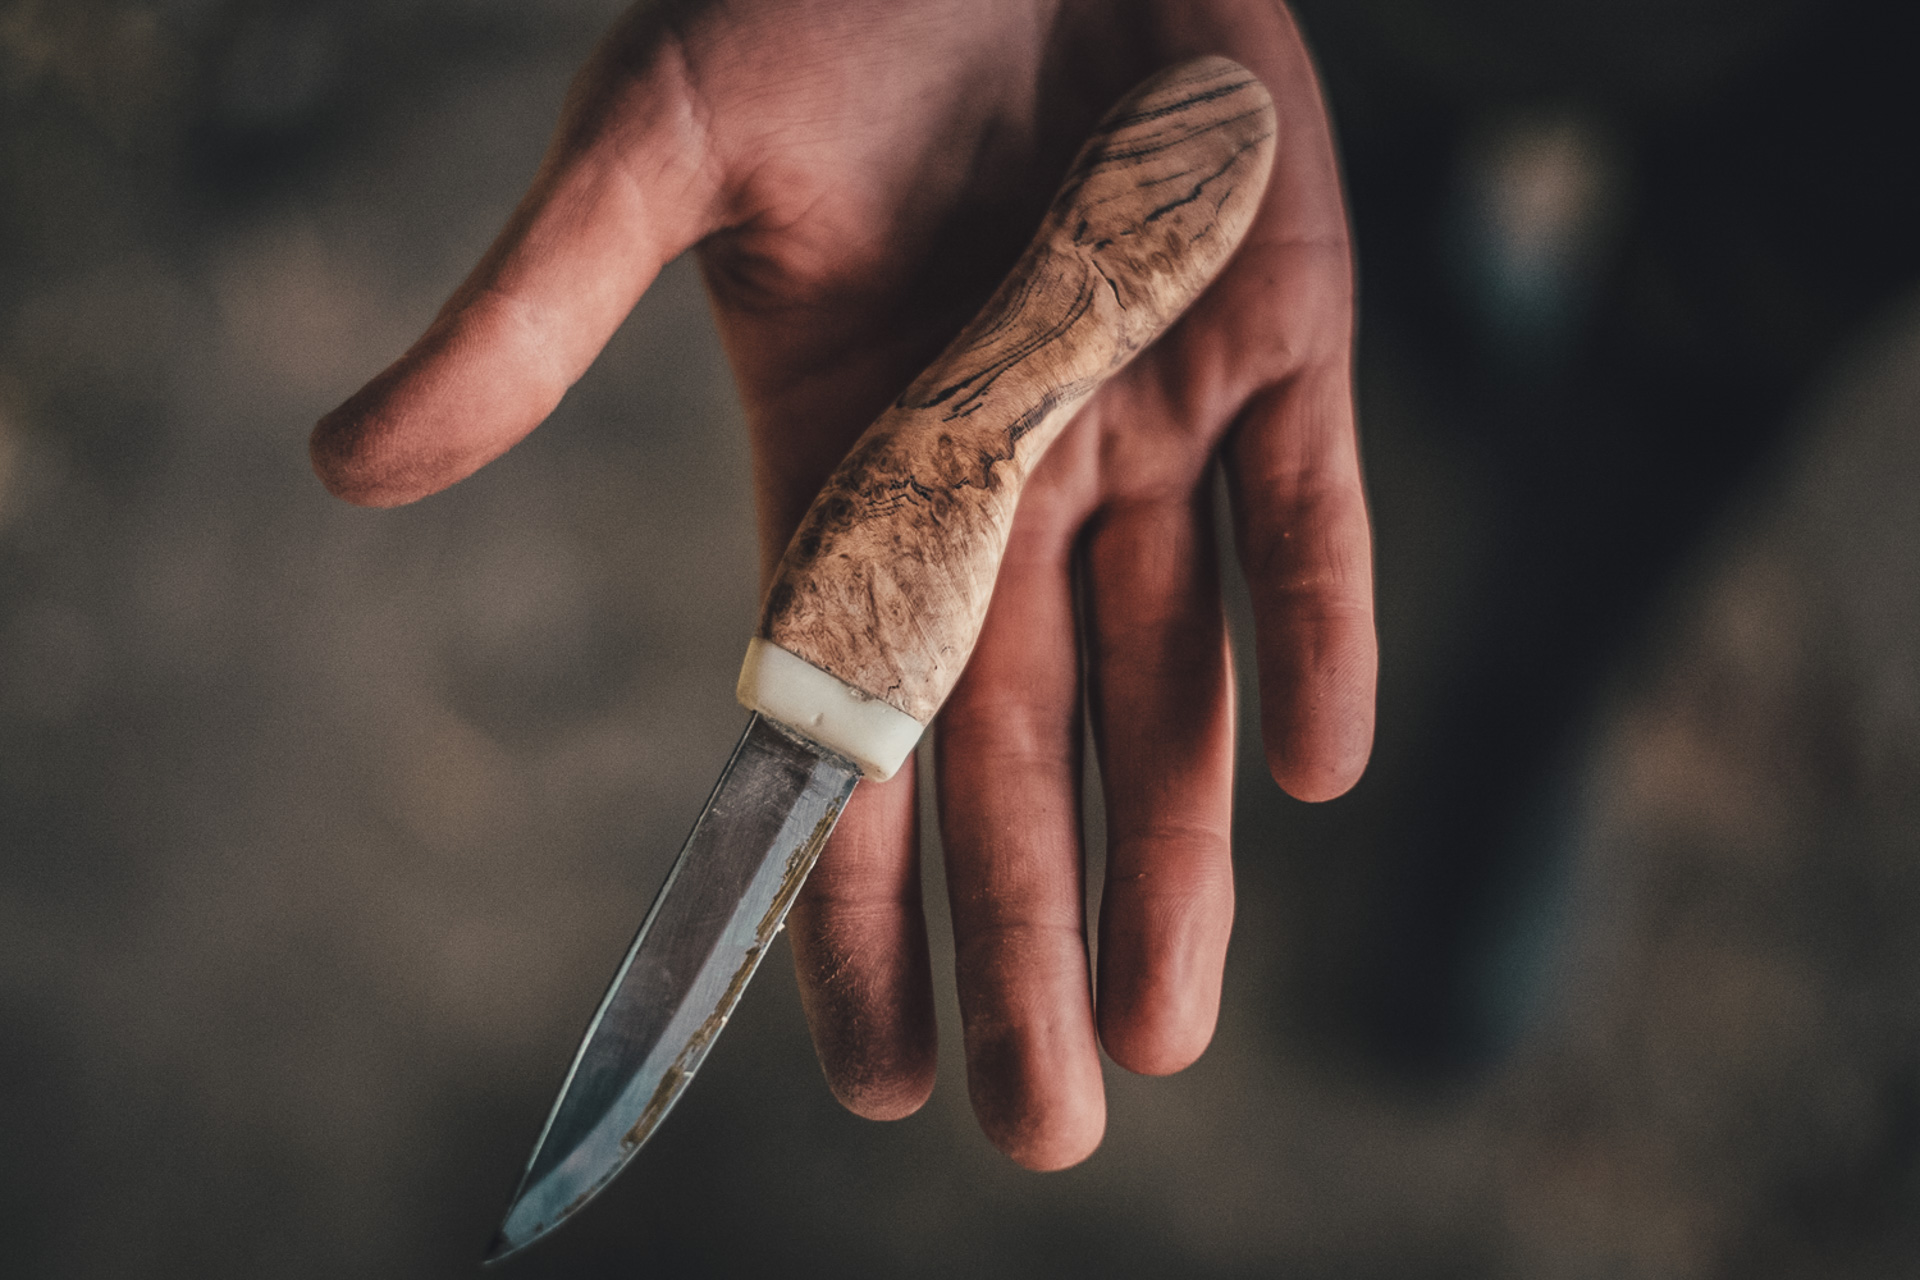 Hand made knife by one of the students